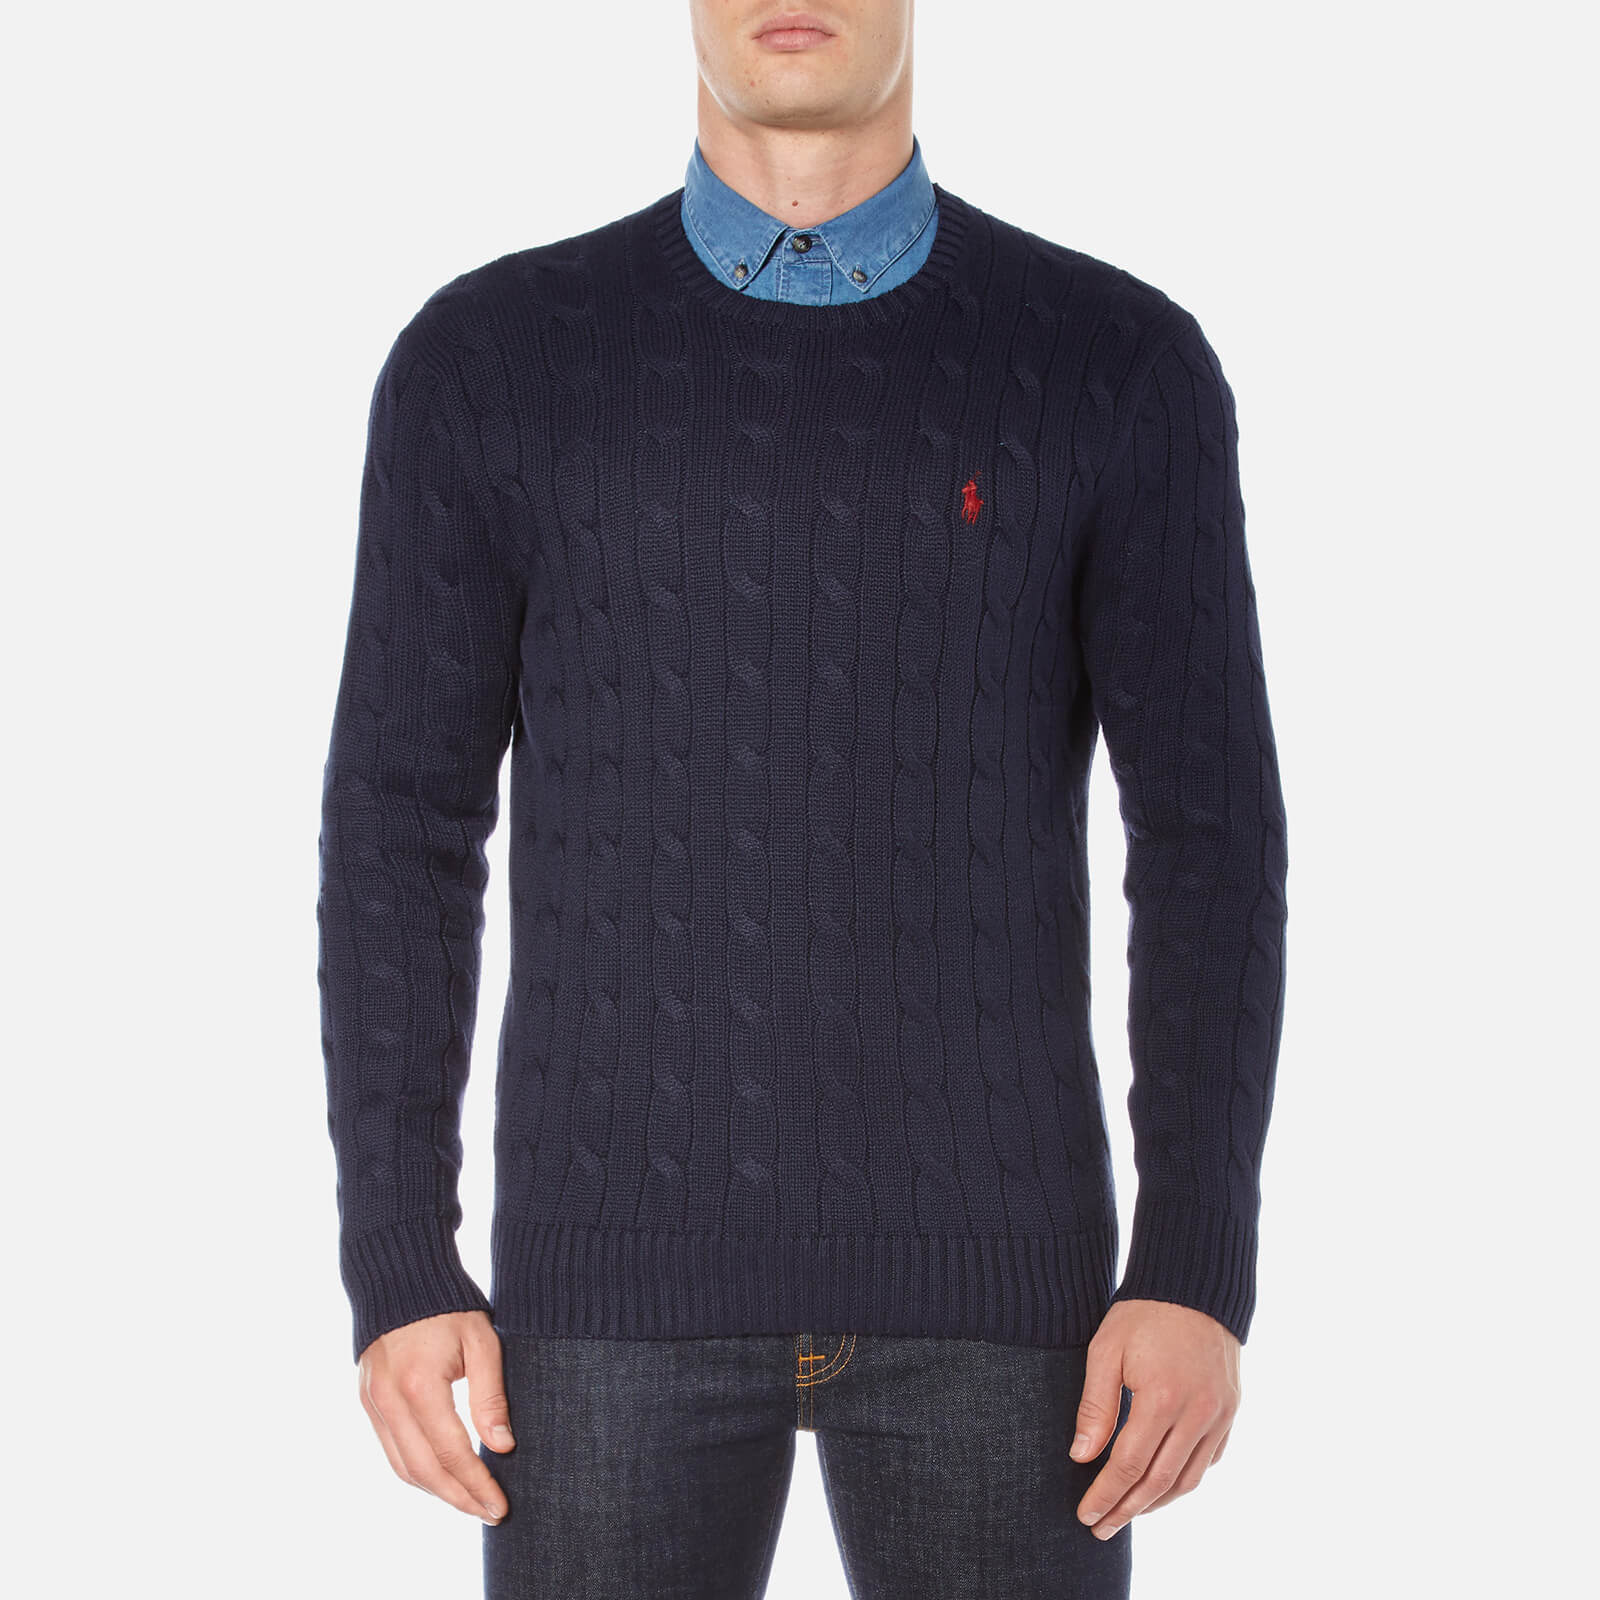 b5543040ddec40 Polo Ralph Lauren Men's Crew Neck Cable Knitted Jumper - Hunter Navy - Free  UK Delivery over £50